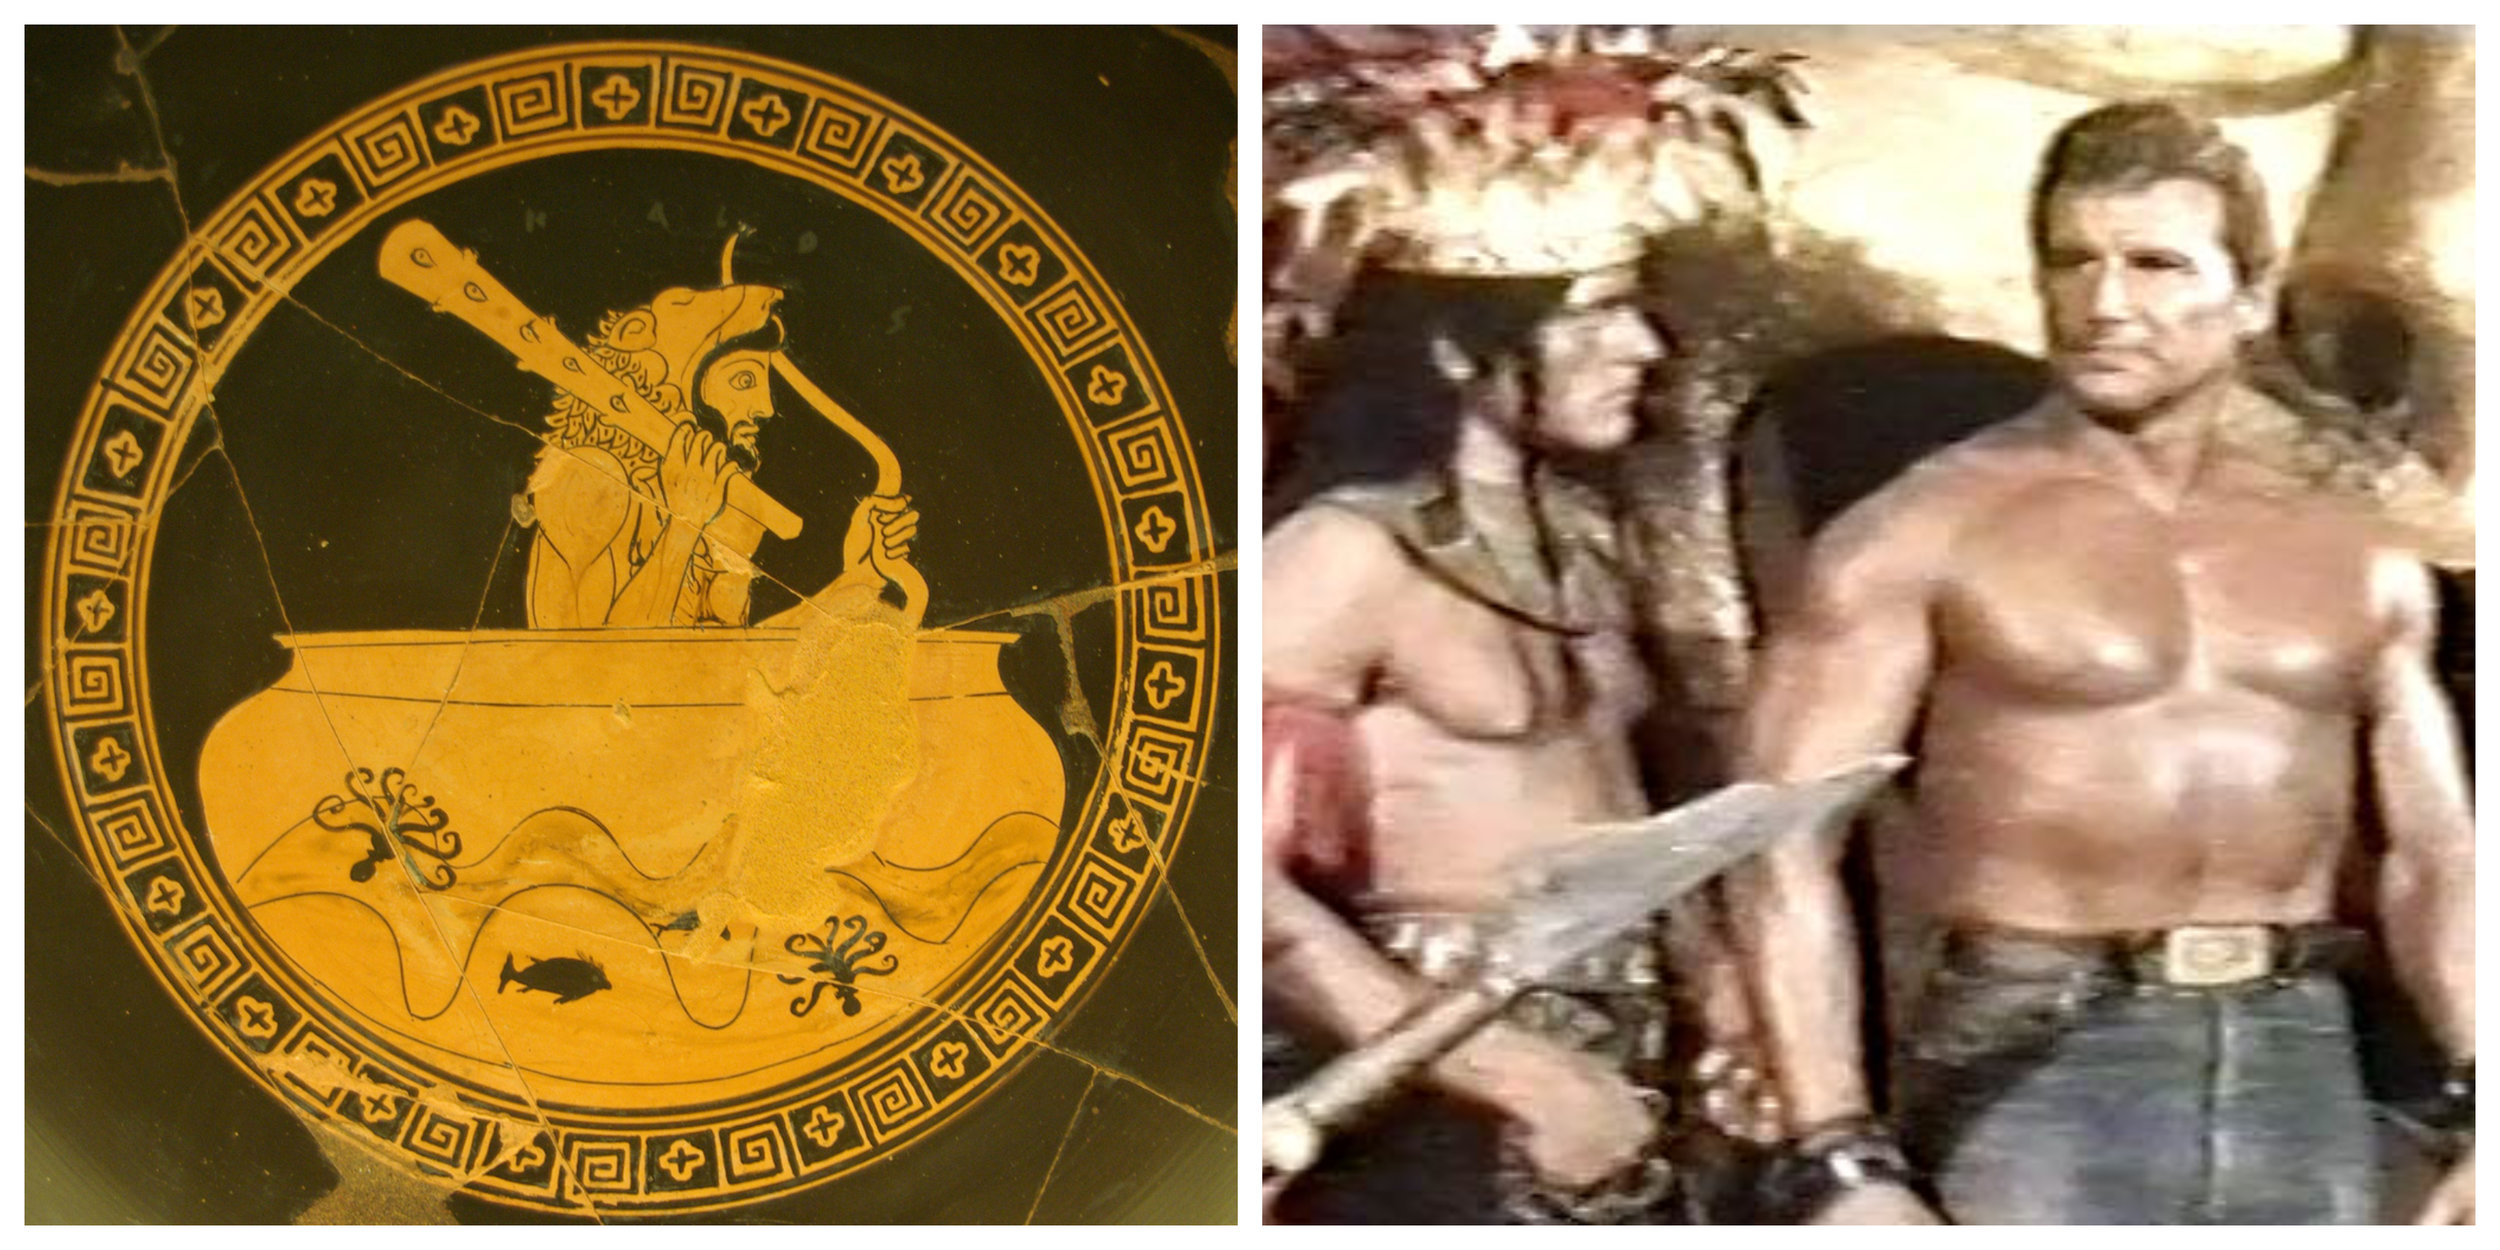 Figure 2: On the left, Hercules sails to Spain in the god Helios' cup; on the right, Hercules faces Aztec warriors in  Hercules Against the Sons of the Sun  (Civirani 1964).